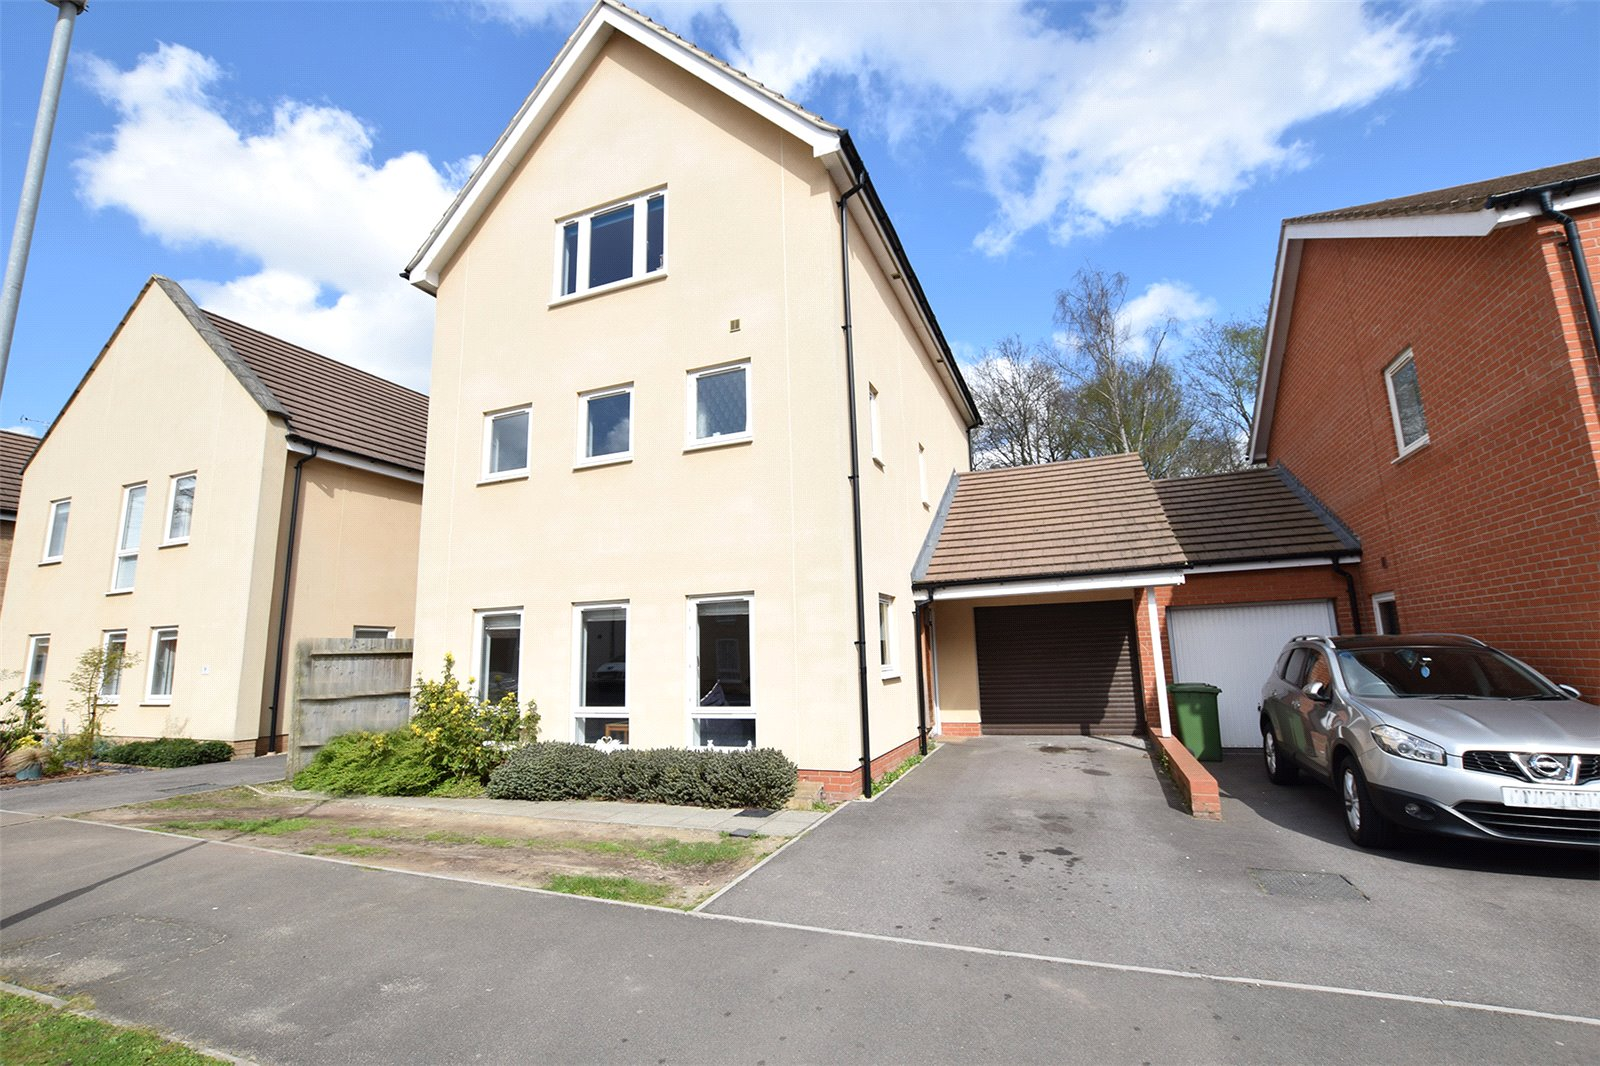 6 Bedrooms Detached House for sale in Lysander Drive, Bracknell, Berkshire, RG12